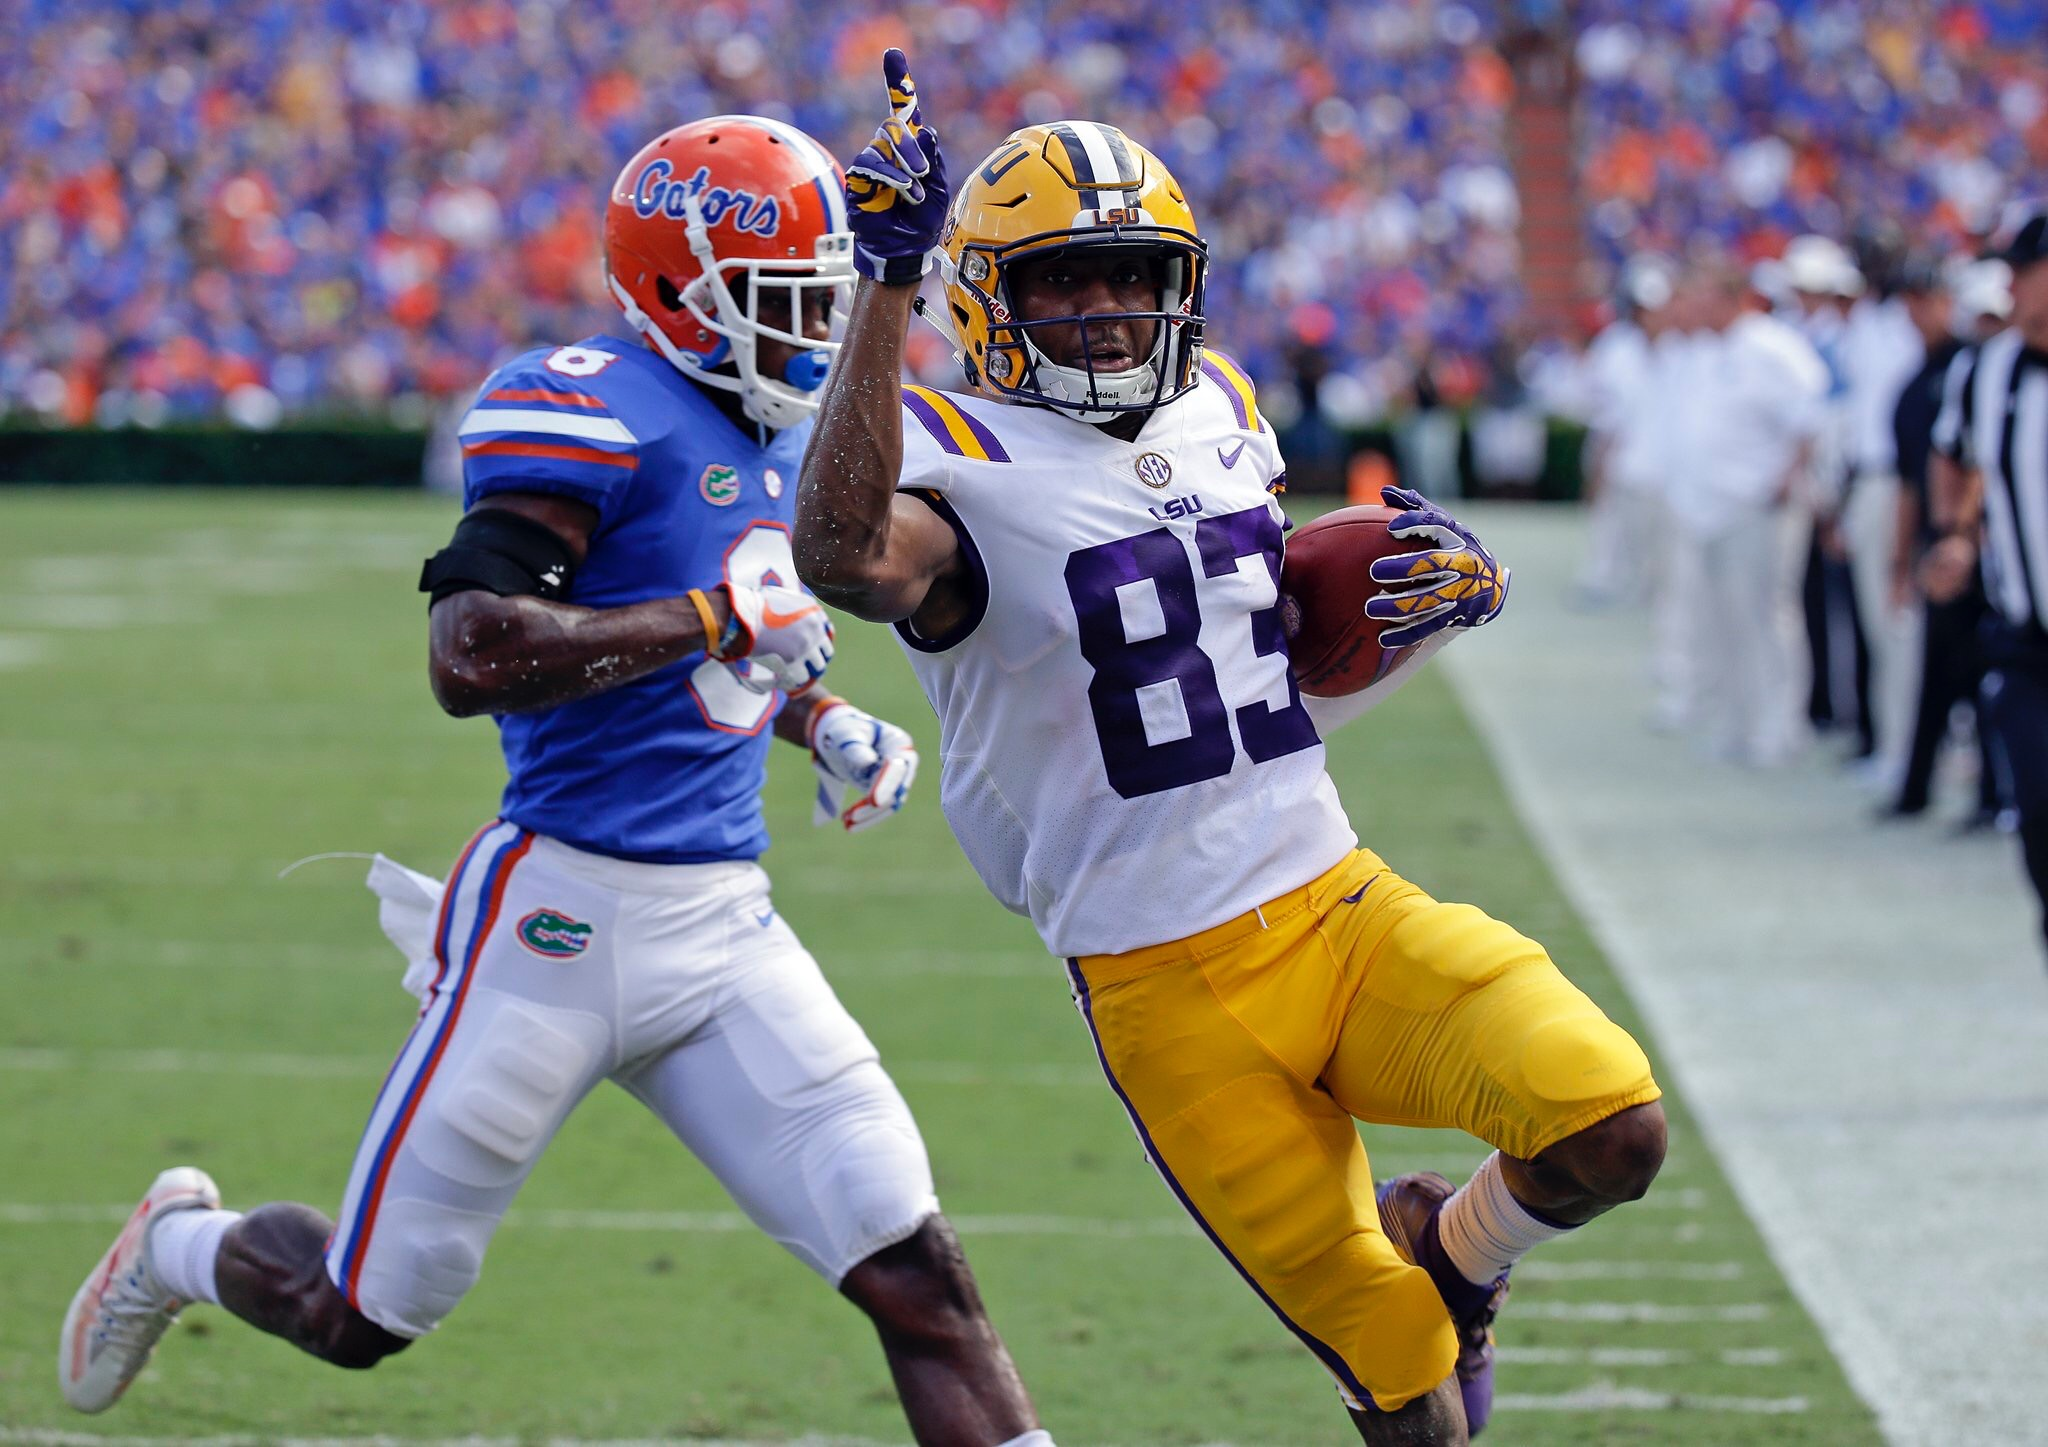 LSU shows toughness, grit in 17-16 win at Swamp